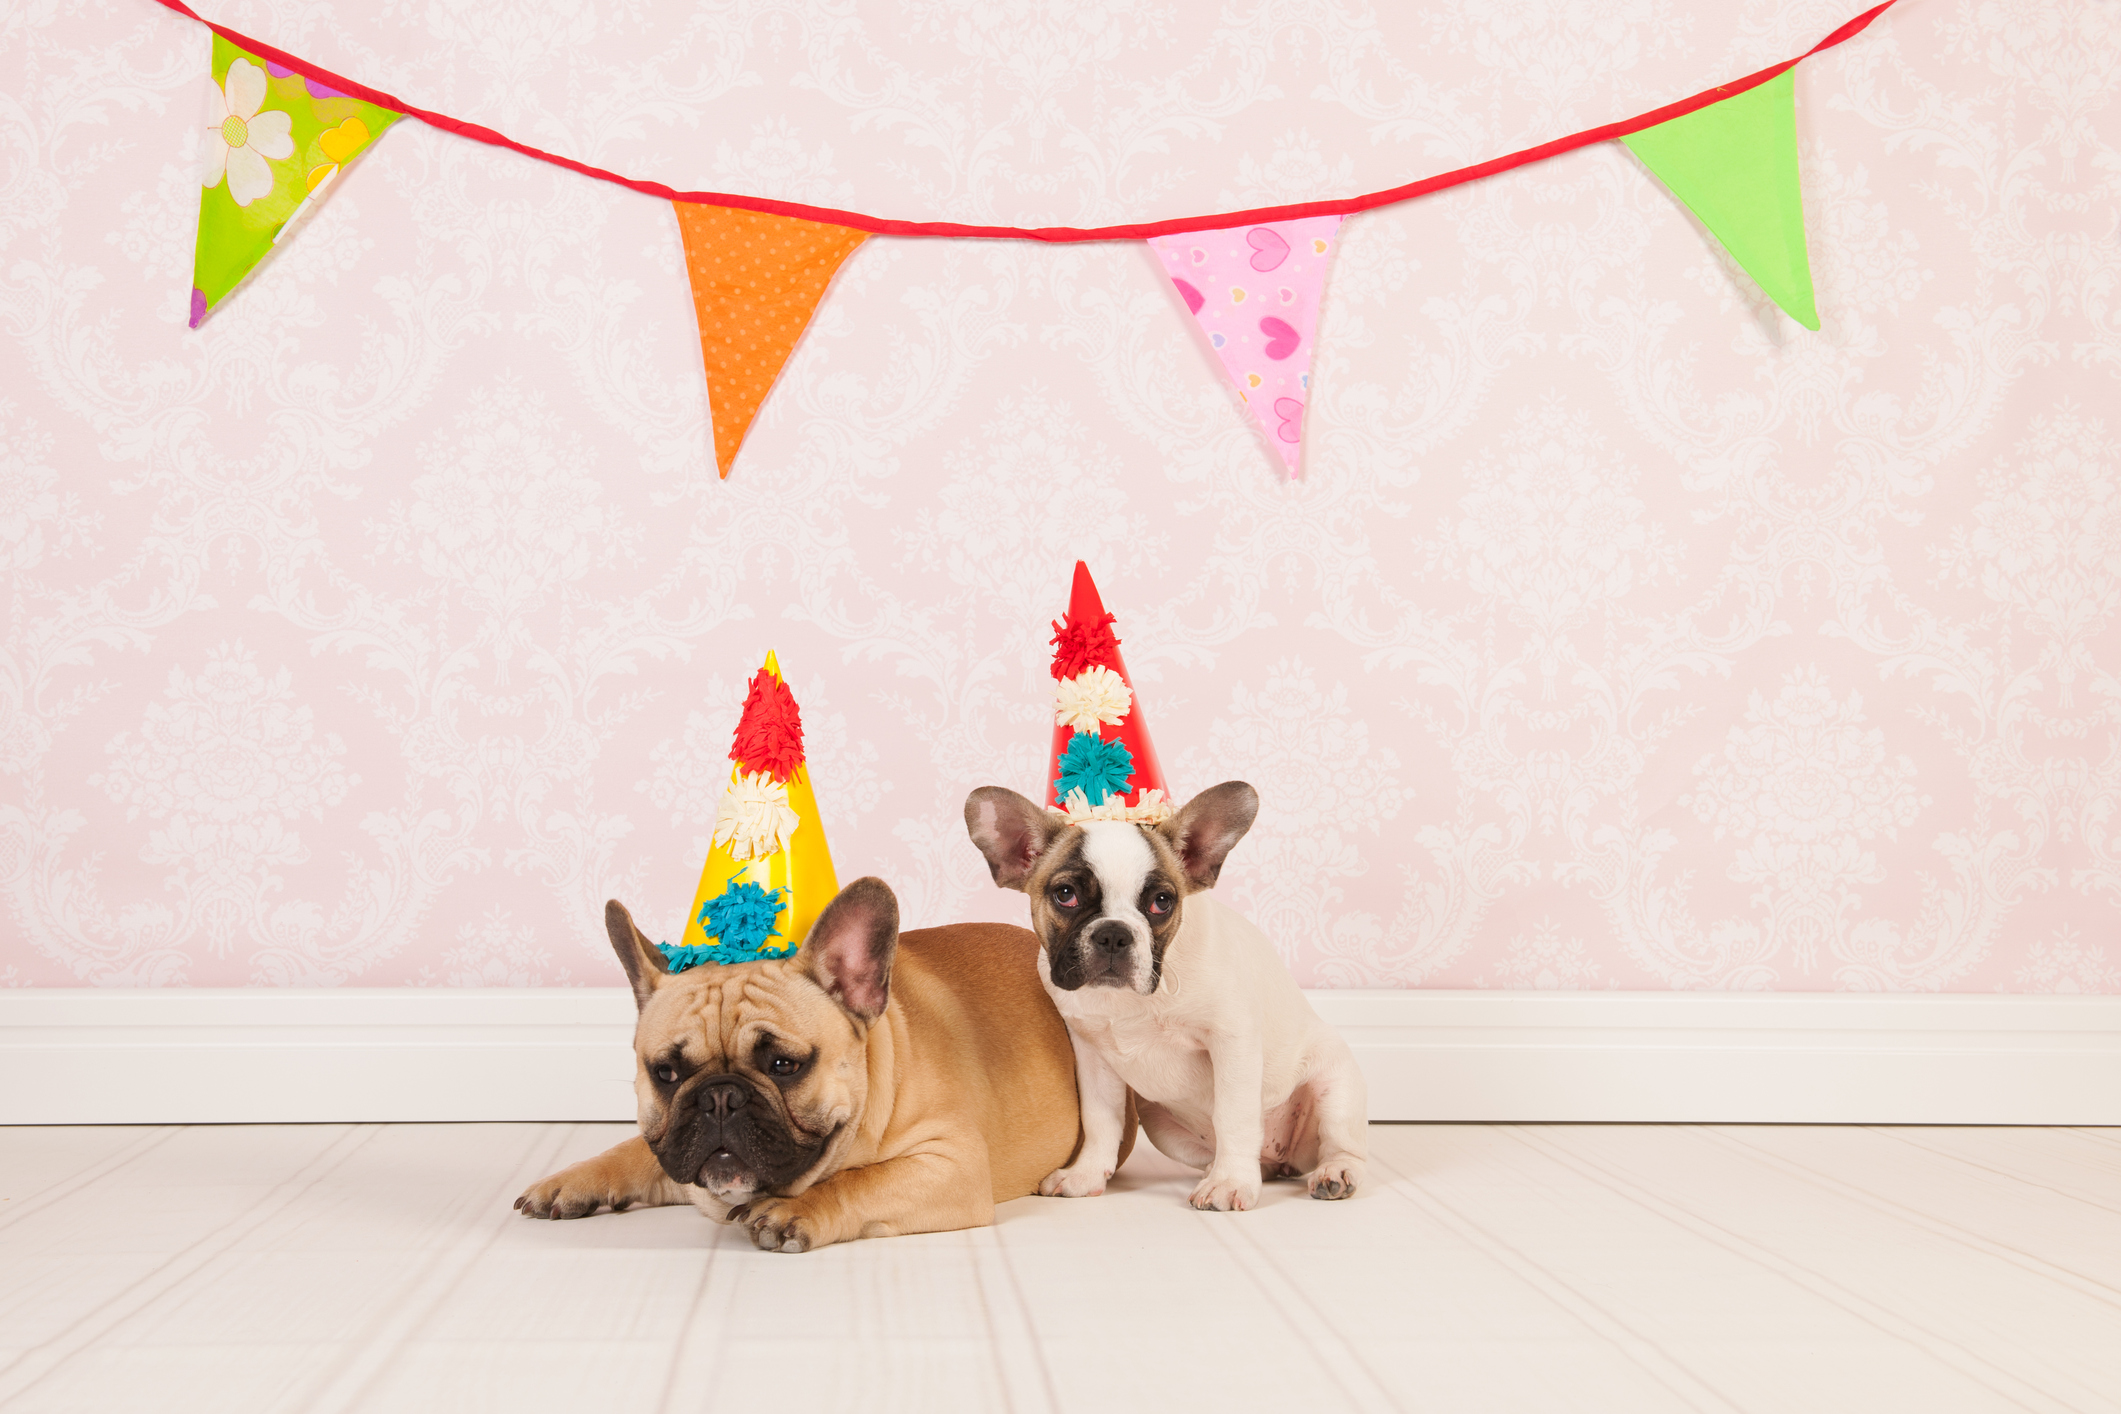 Two French bulldogs are having birthday in room with vintage wallpaper